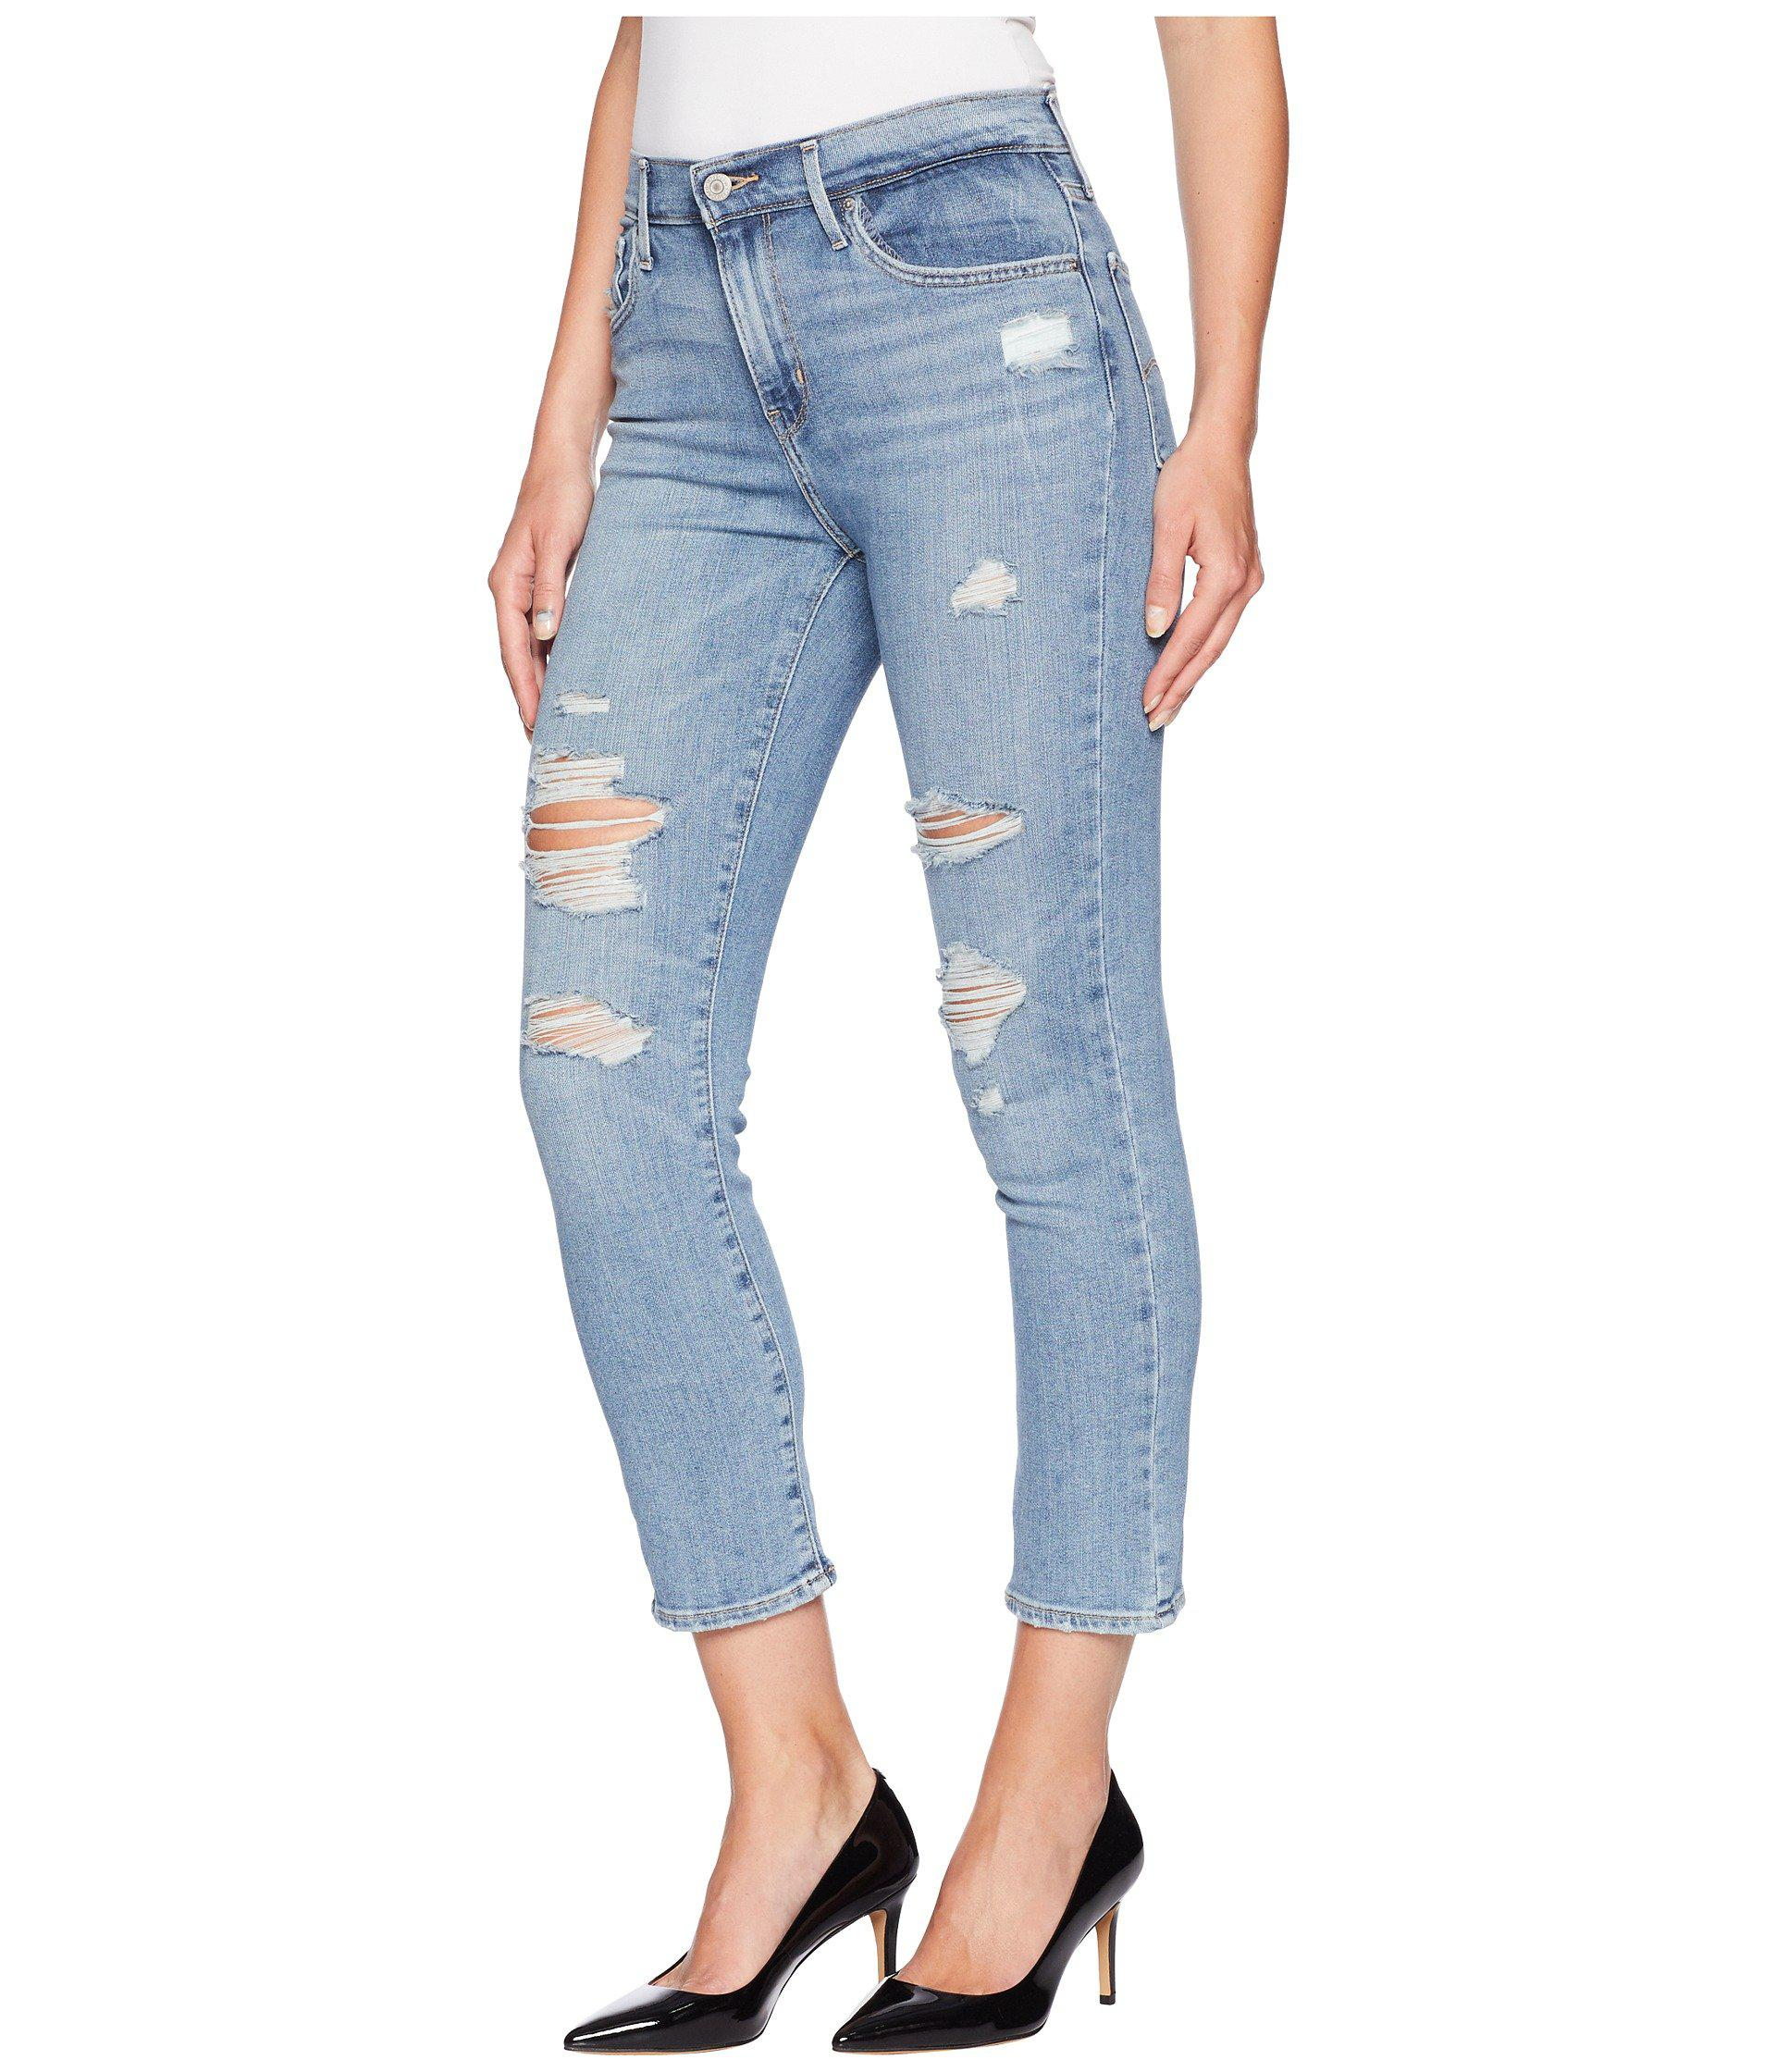 1c25b6ae4e6b7 Lyst - Levi s Levi s(r) Womens 724 High-rise Straight Crop (perfect  Mistake) Women s Jeans in Blue